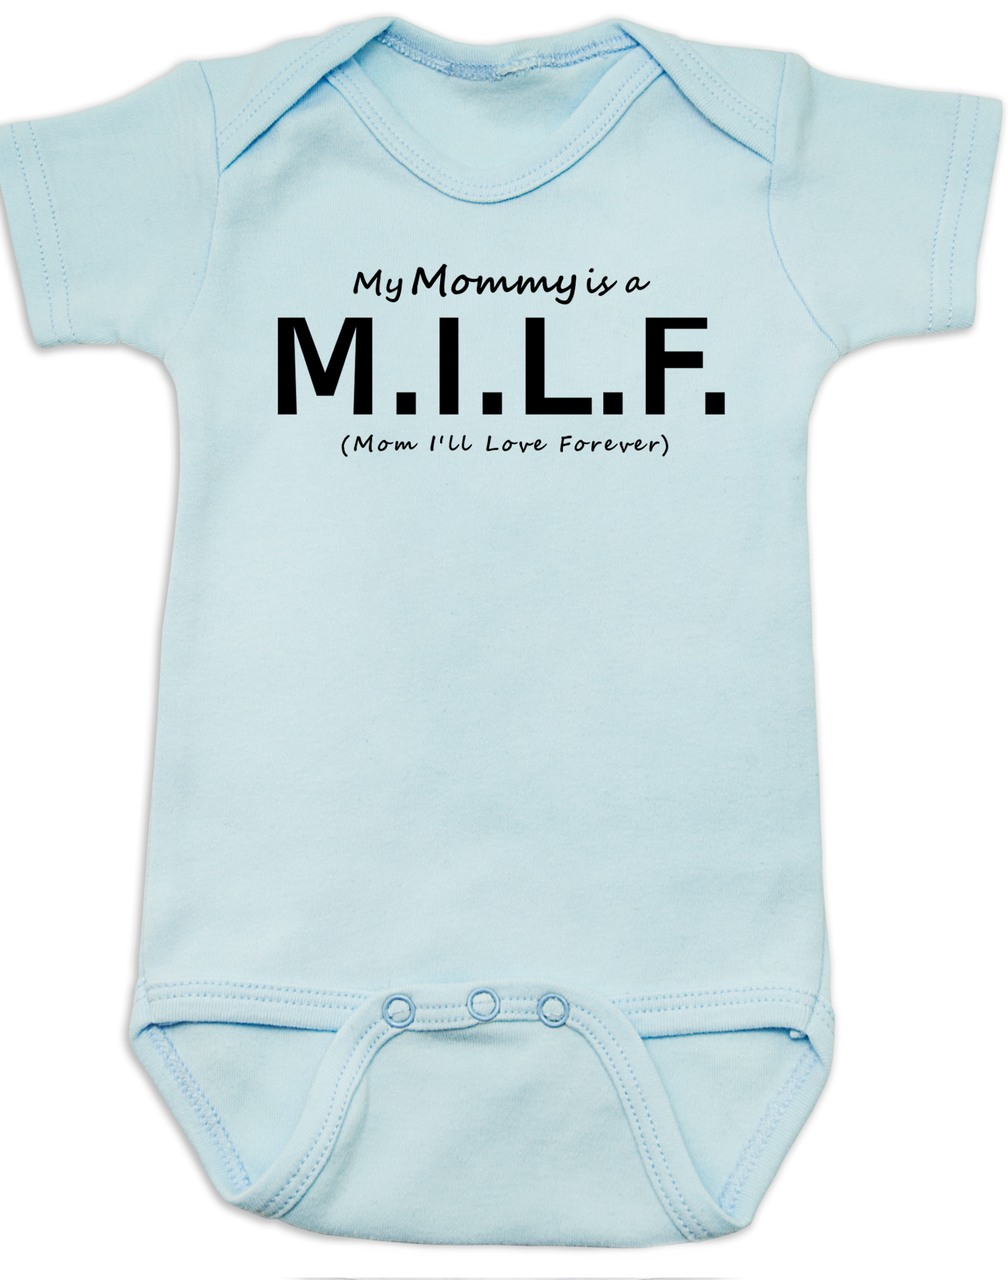 I/'m moms favorite funny infant baby shower one piece tshirt onesie